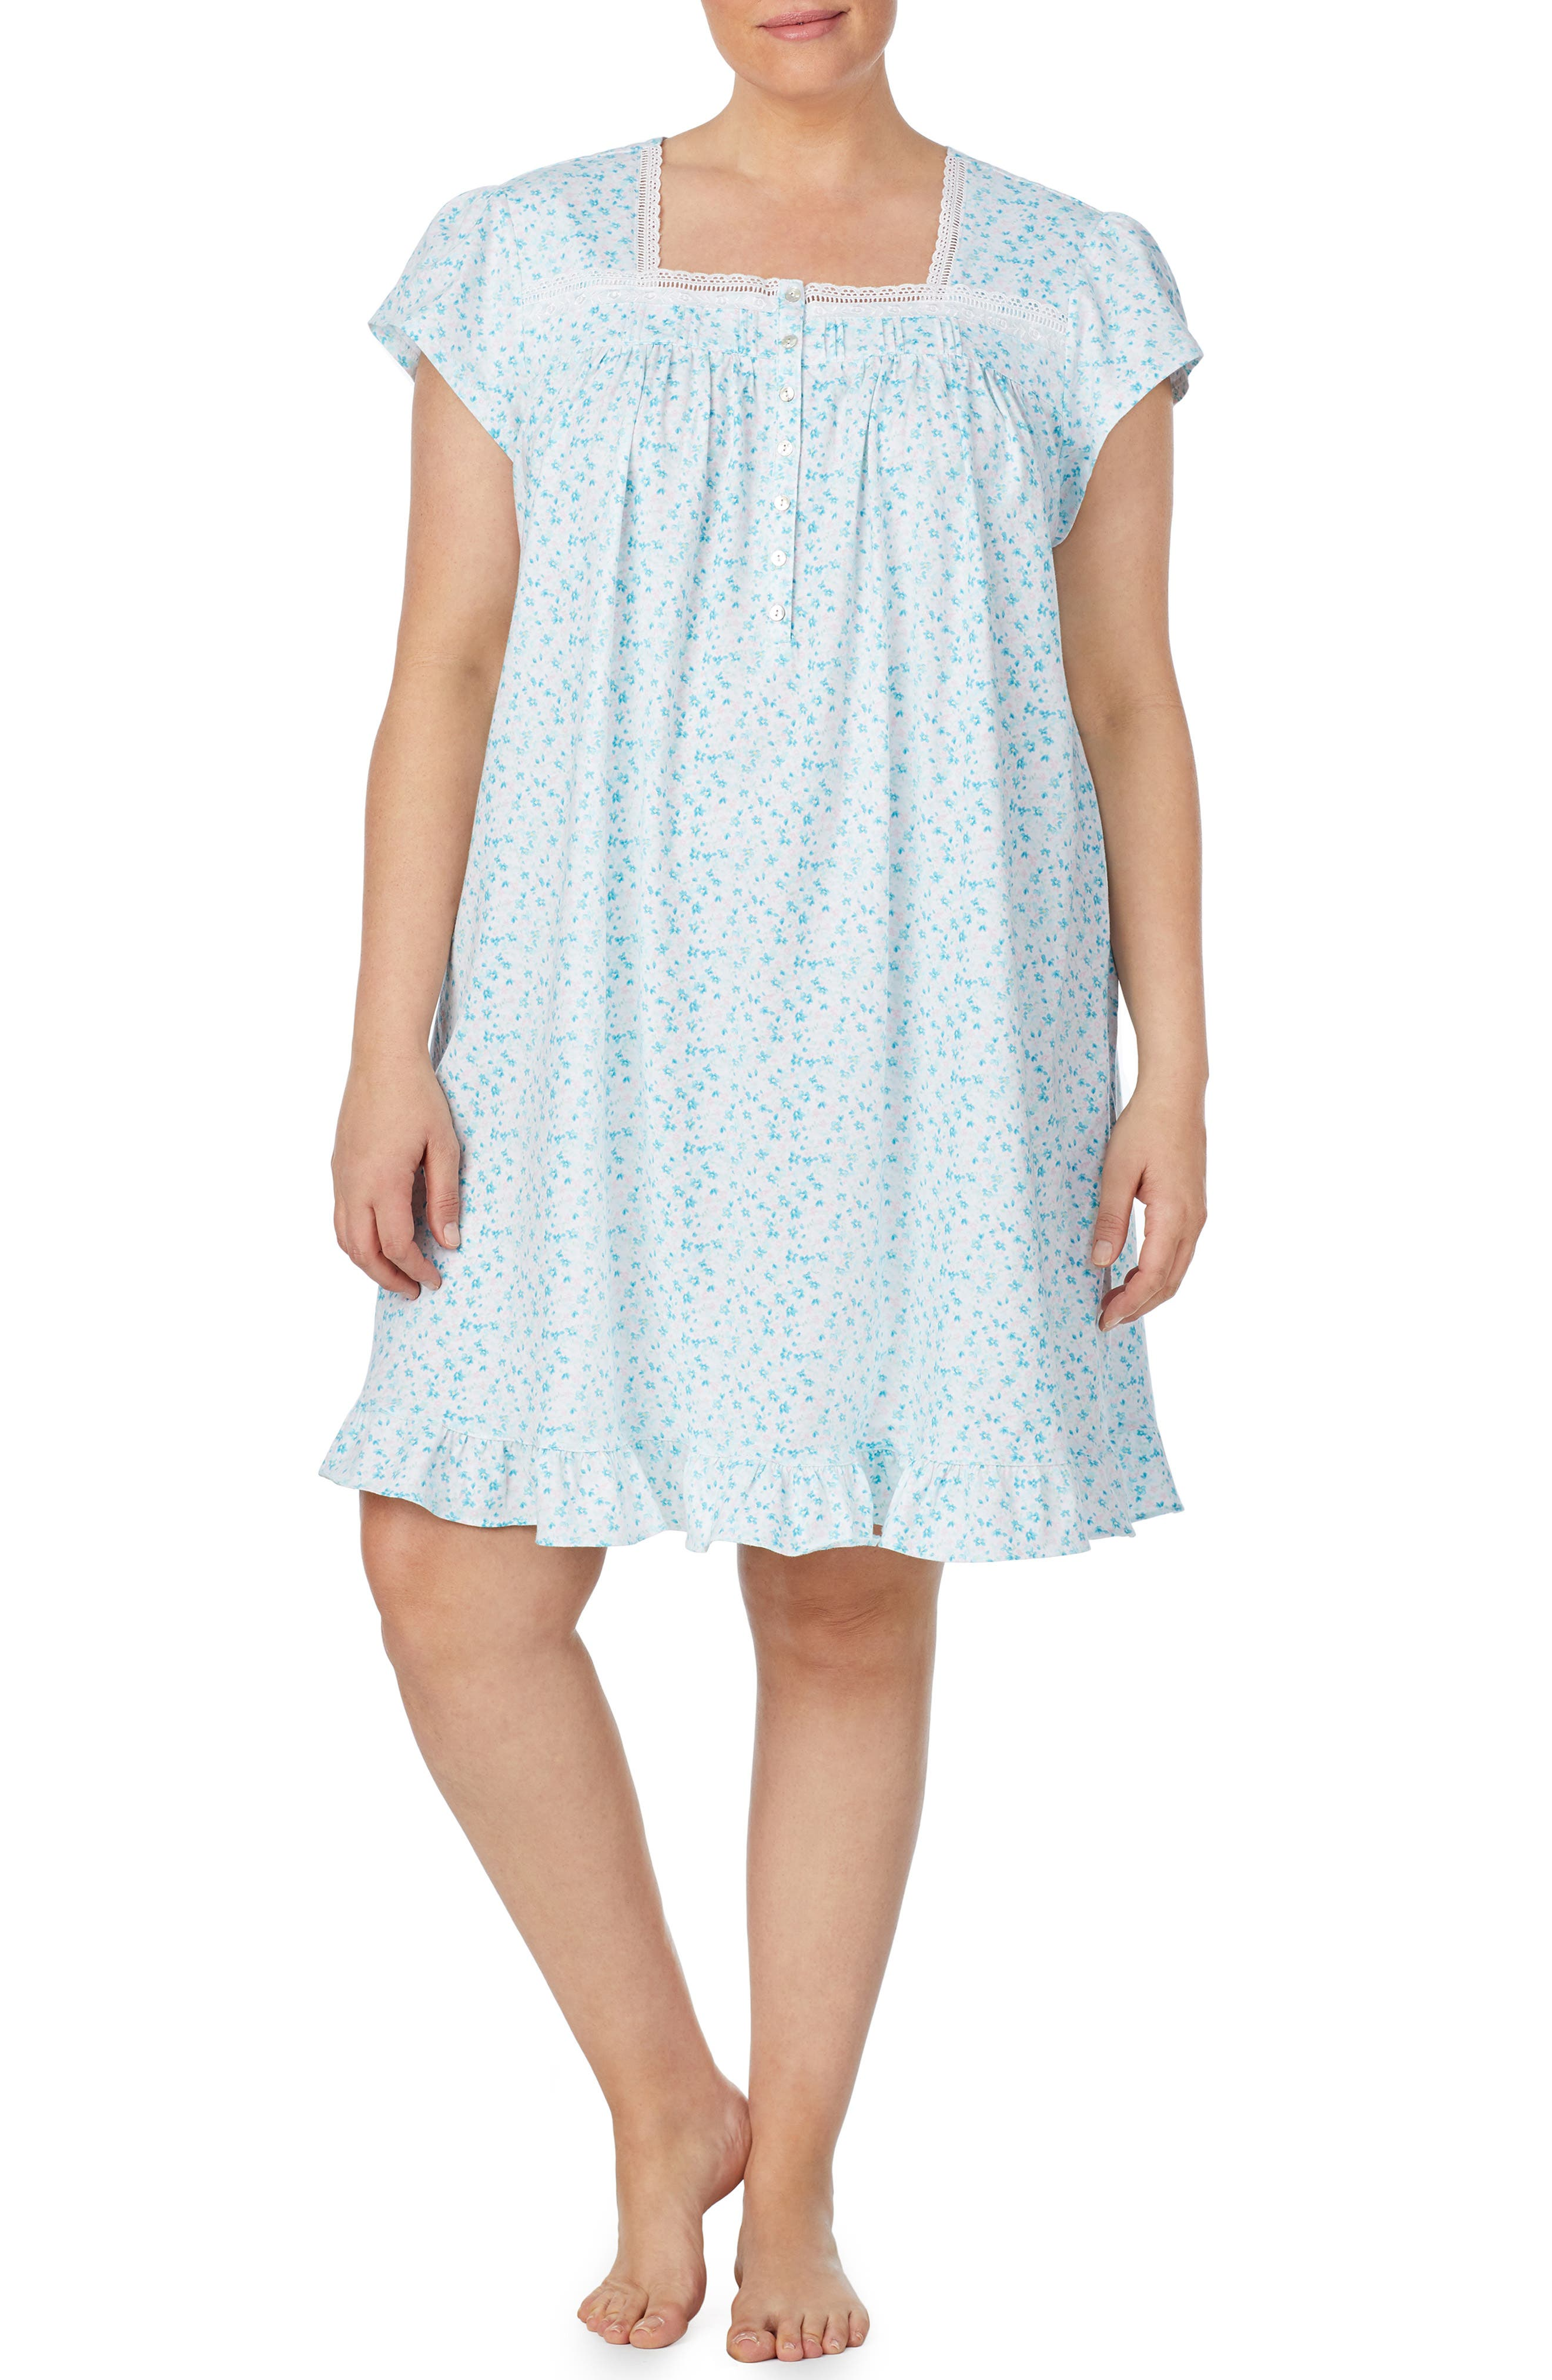 98df670a717 plus size nightgowns